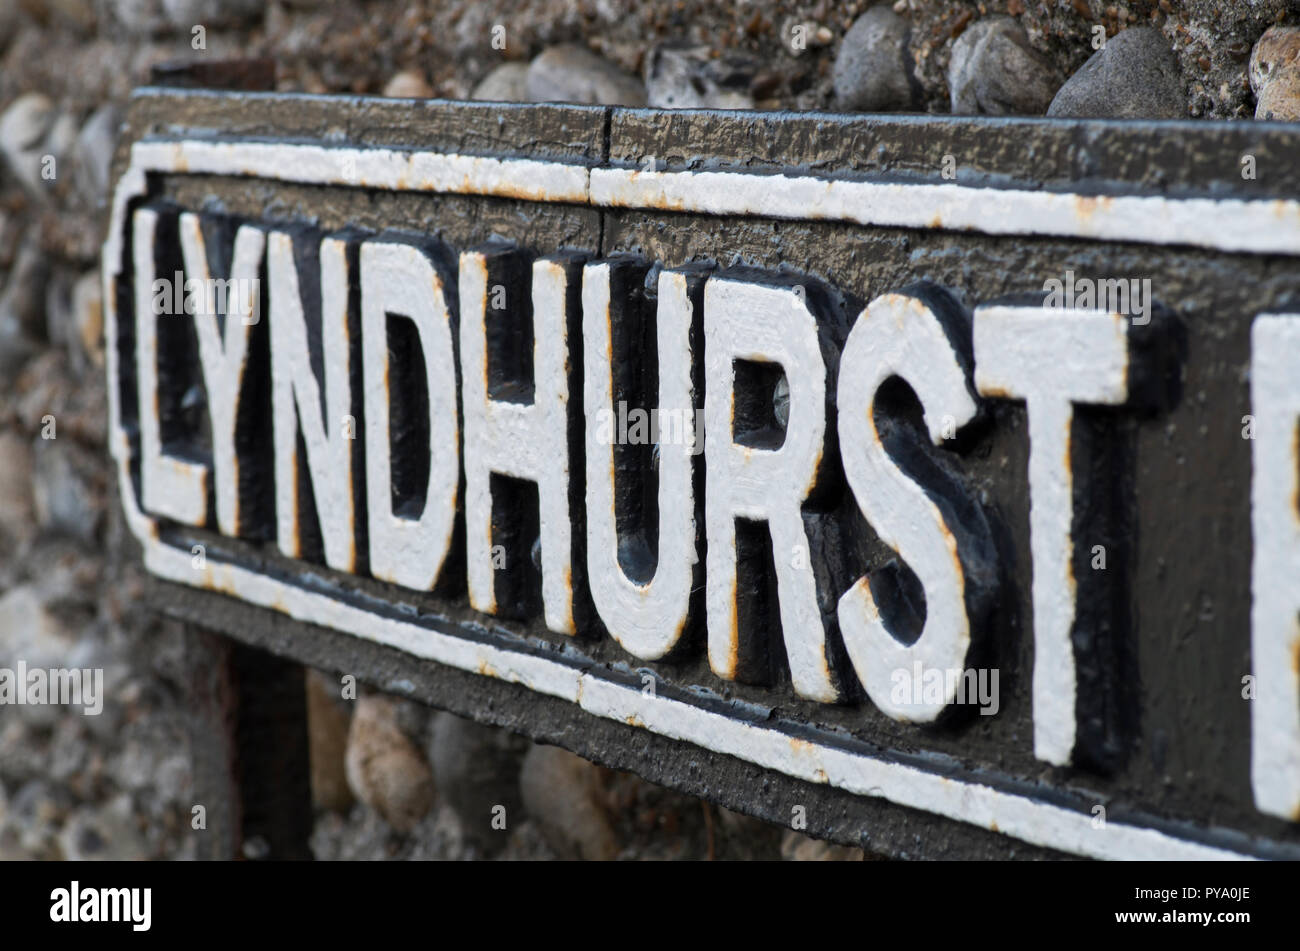 Traditional cast iron street name sign. Lyndhurst Road, Worthing, West Sussex UK. - Stock Image